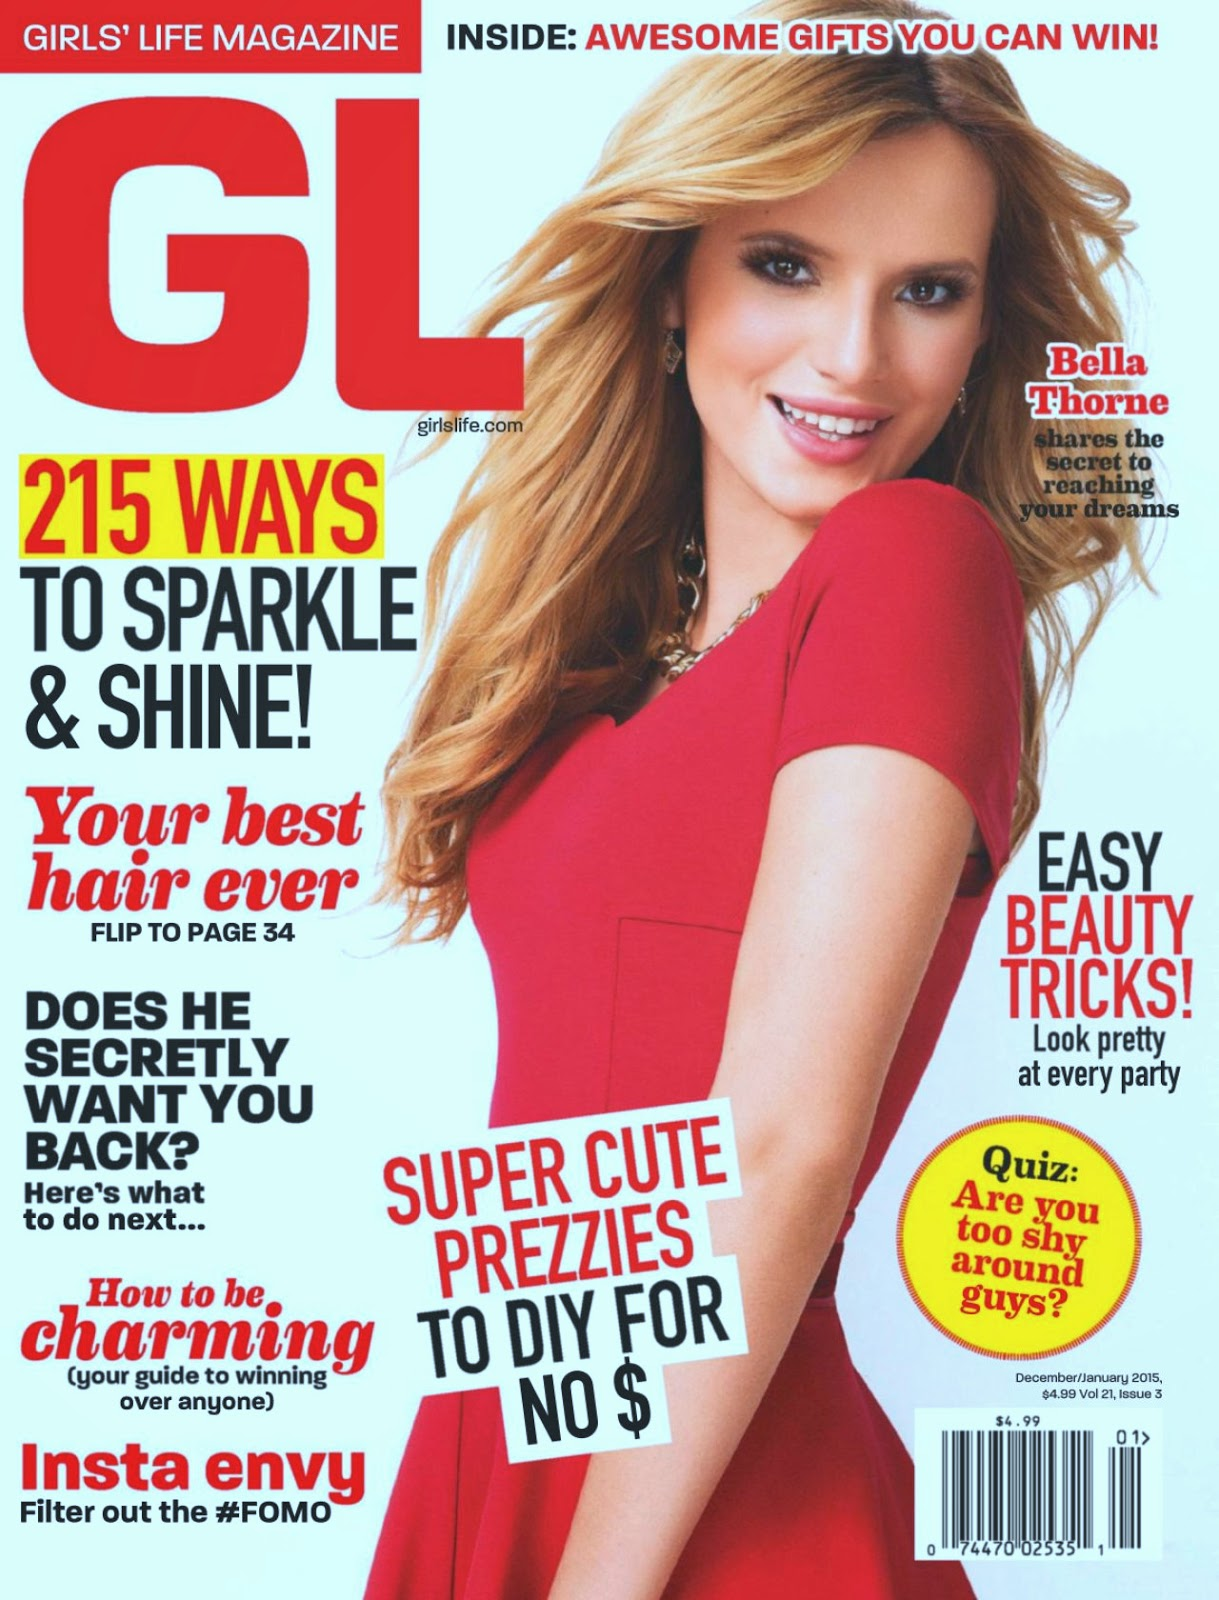 Bella Thorne covers Girl's Life Magazine December/January 2014/15